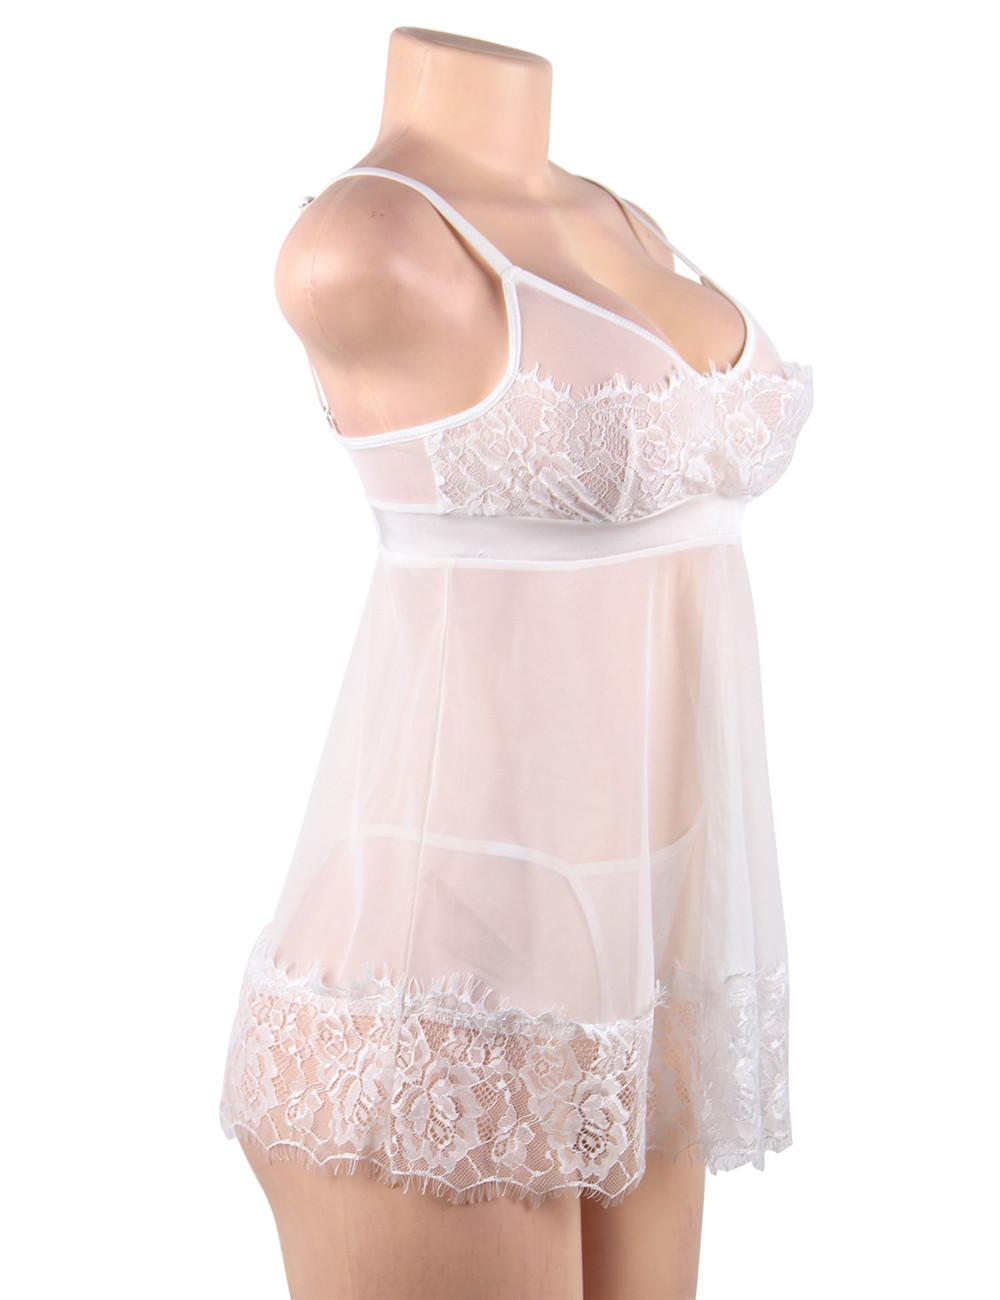 Plus size sheer white babydoll set side view